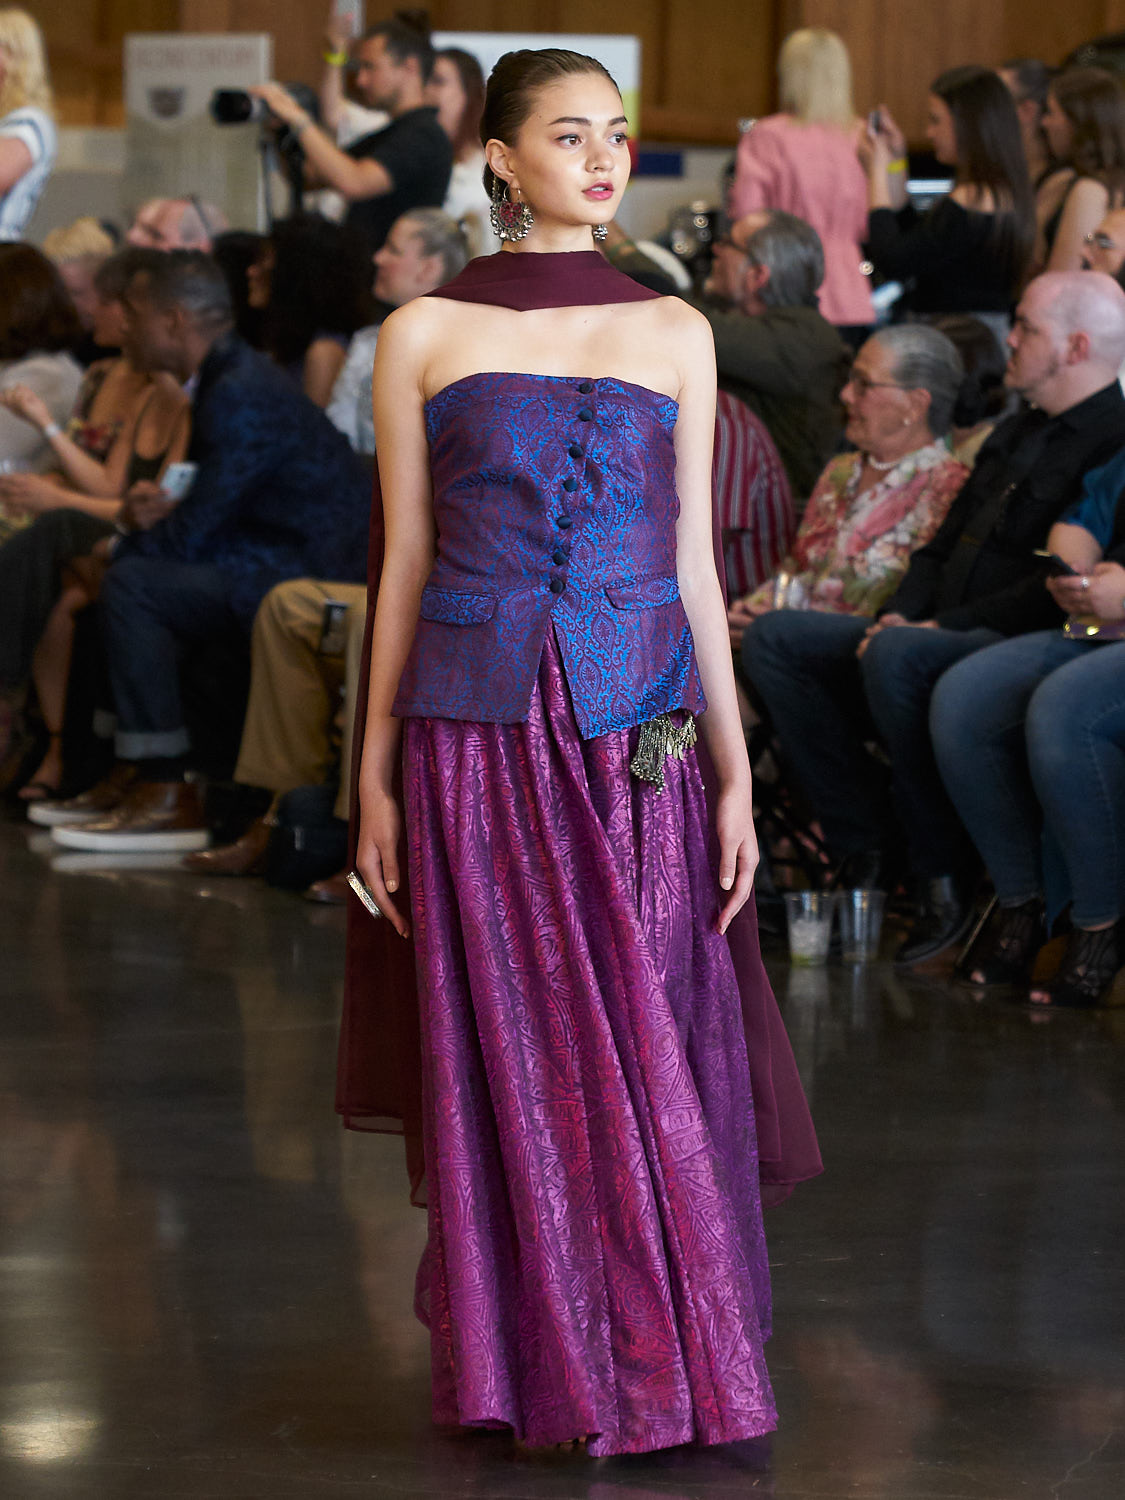 AMVISUALS-Couture-Cars-Fashion-Show-LeMay-Museum-Tacoma-Fashion-7.jpg